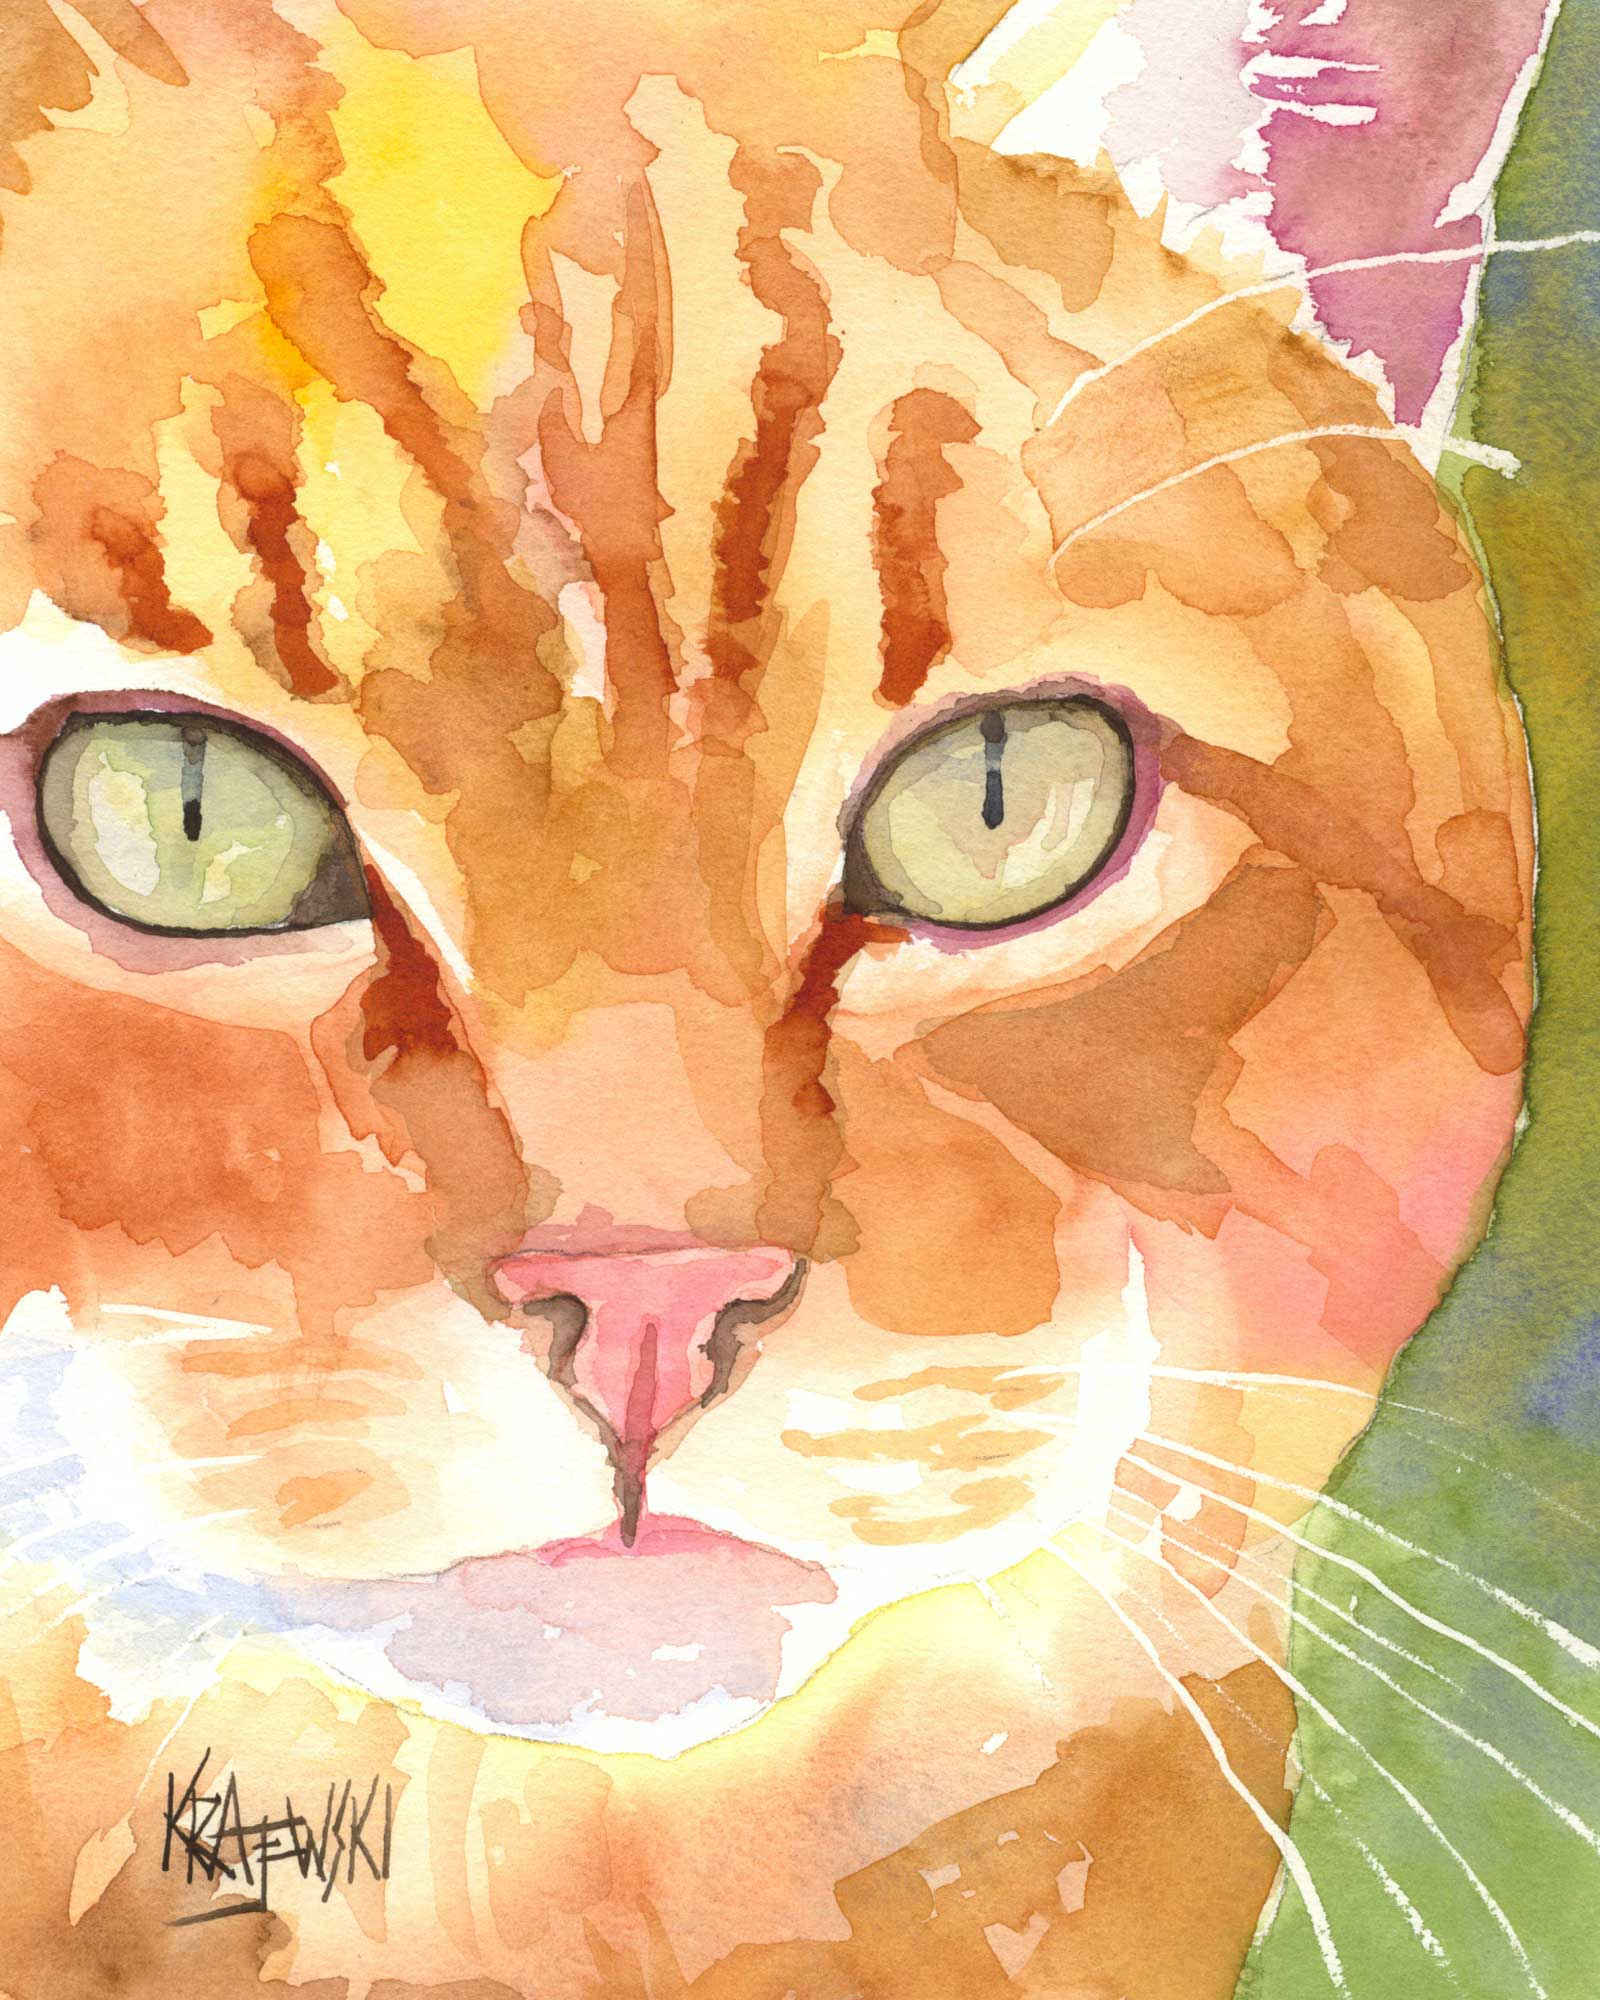 Orange Tabby Cat 041106 - Ron Krajewski Art